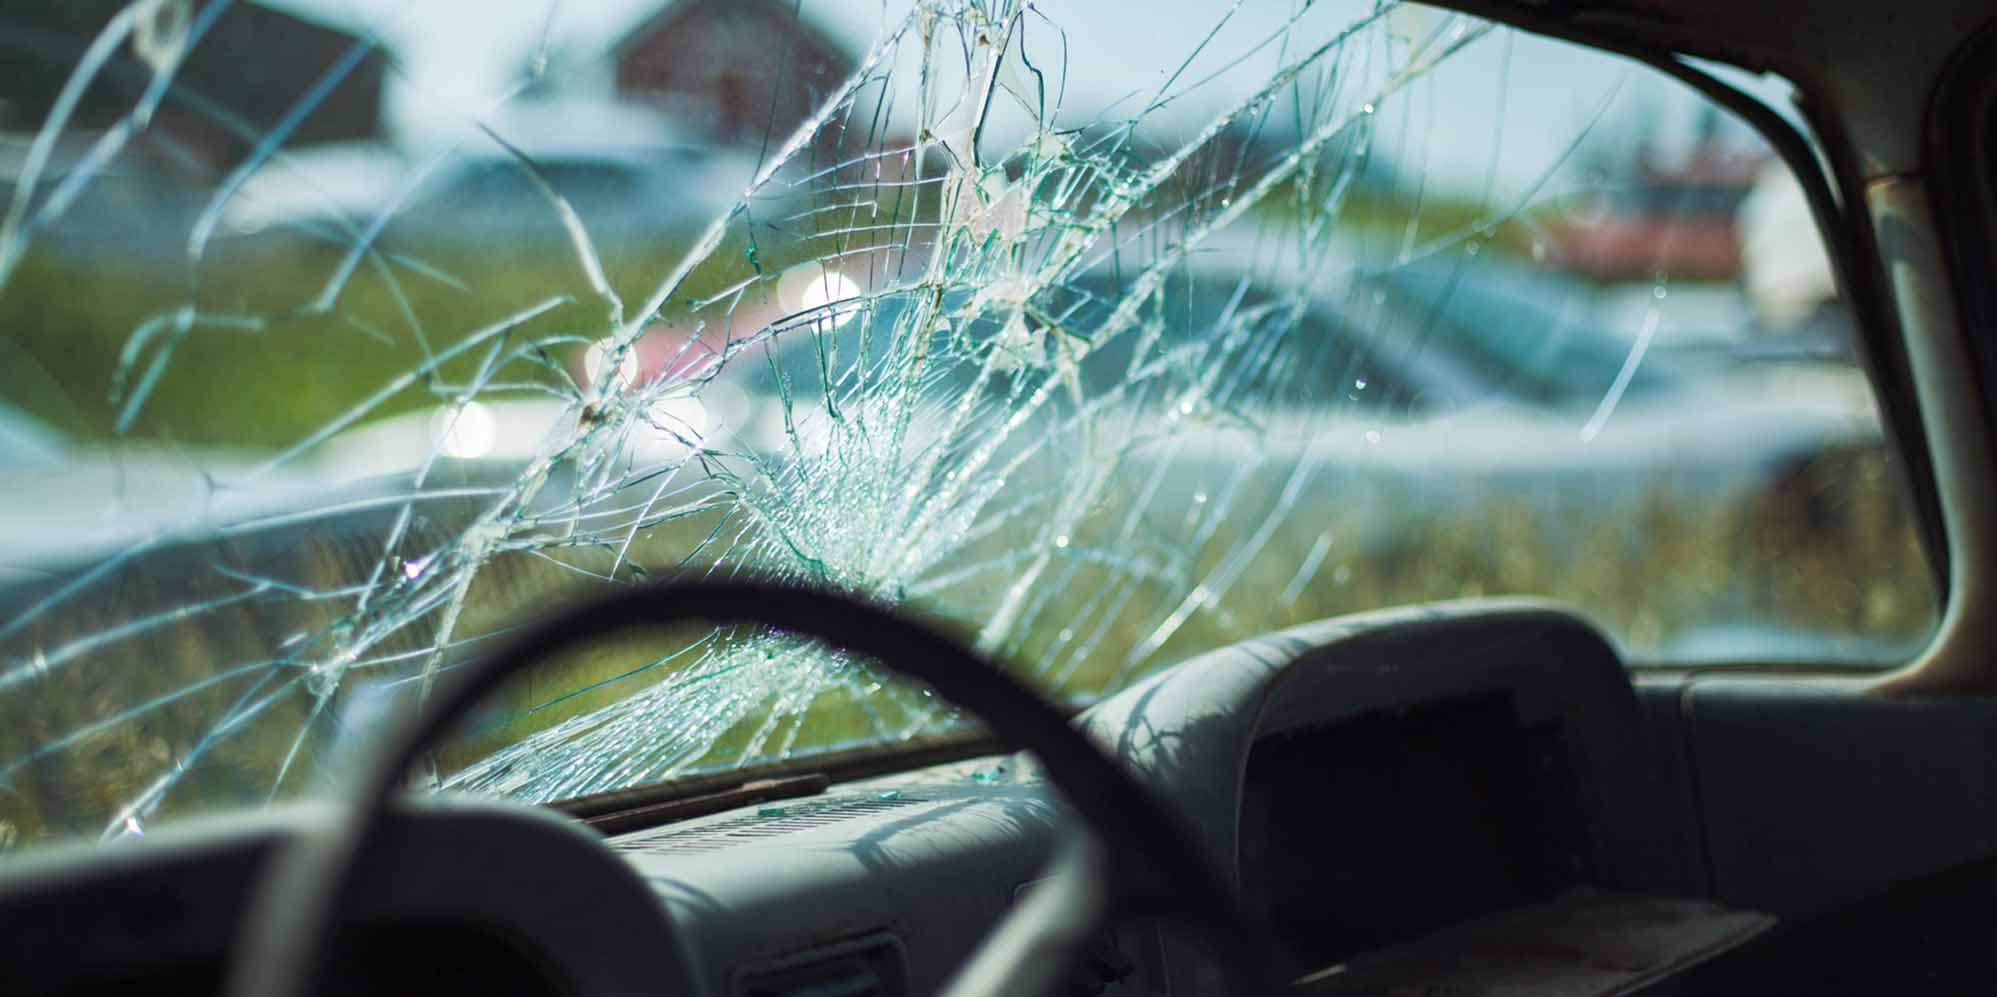 20 Best San Jose Auto Glass Companies Expertise